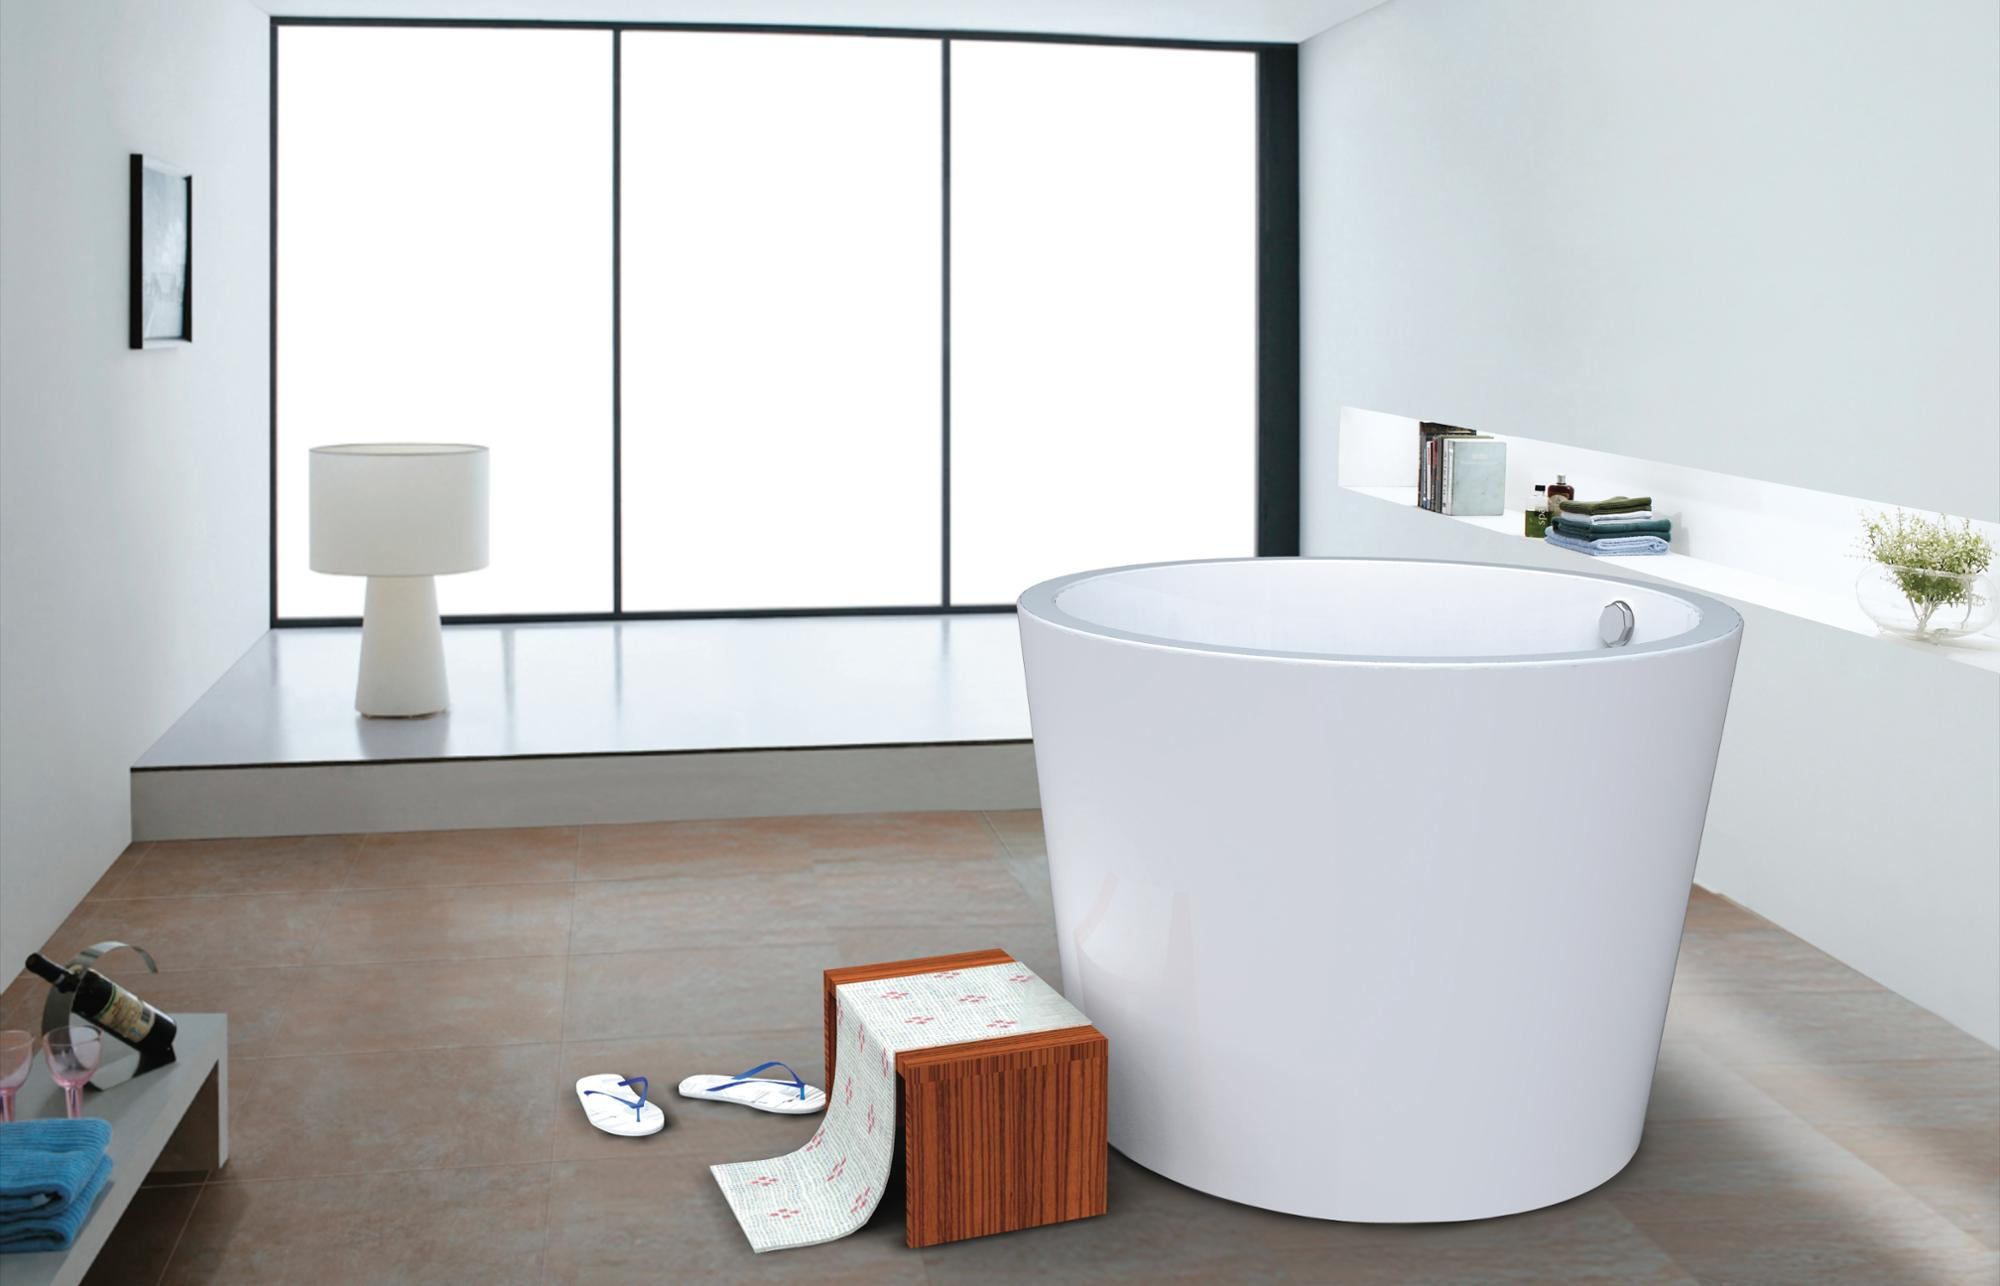 Hs-bz673 Round Deep Soaking Bathtubs,Bath Tub Acrylic,Soak Tub Deep ...